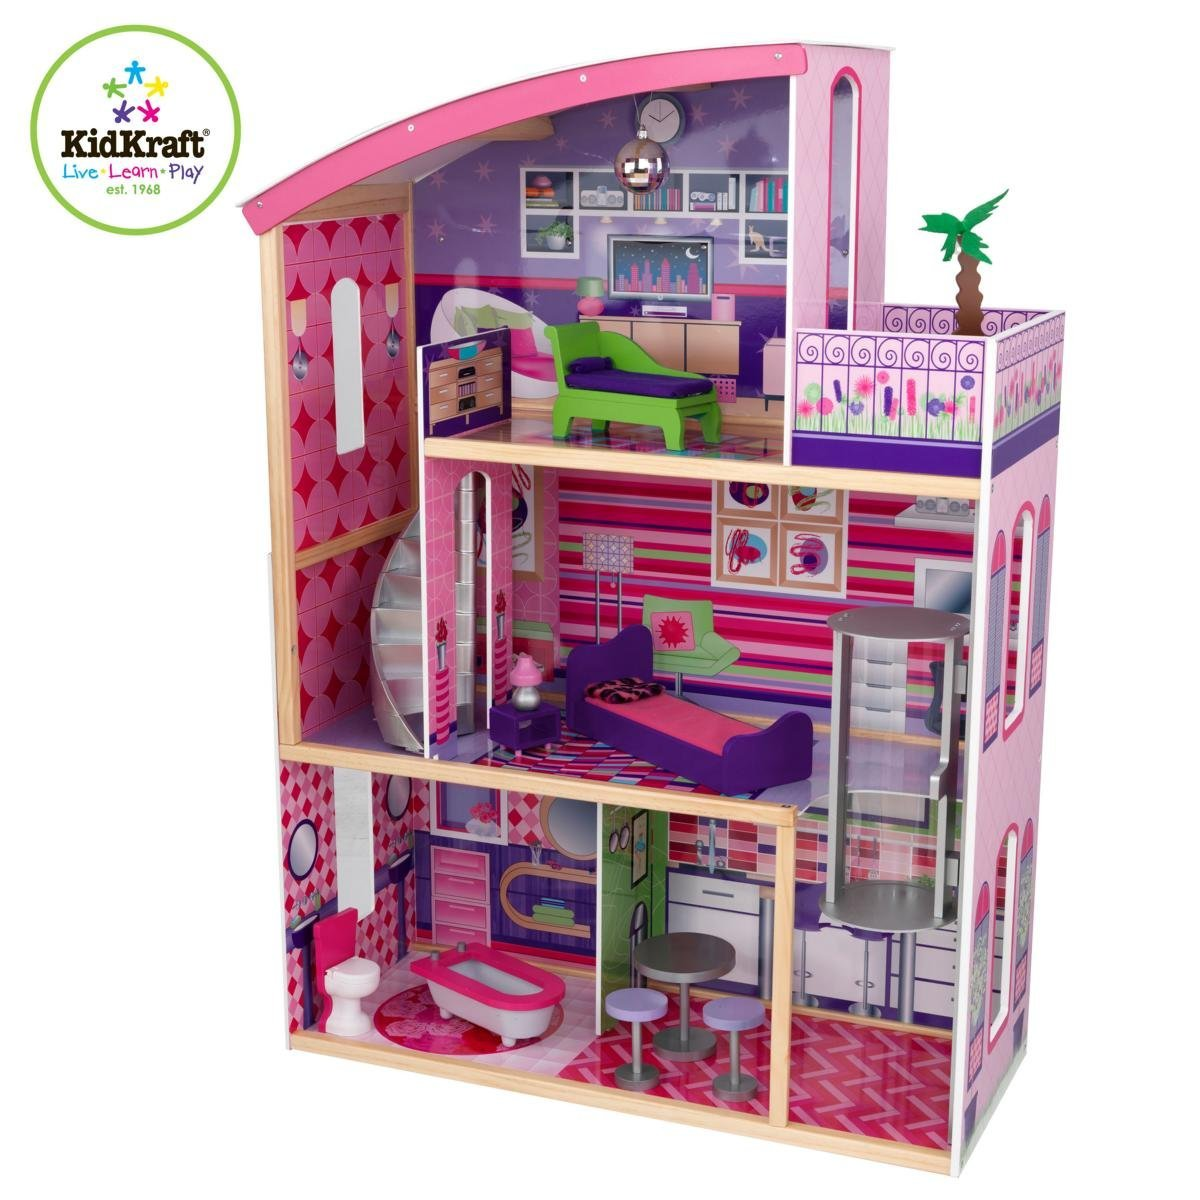 Kidkraft Wooden Modern Dream Glitter Dollhouse fits Barbie by KidKraft